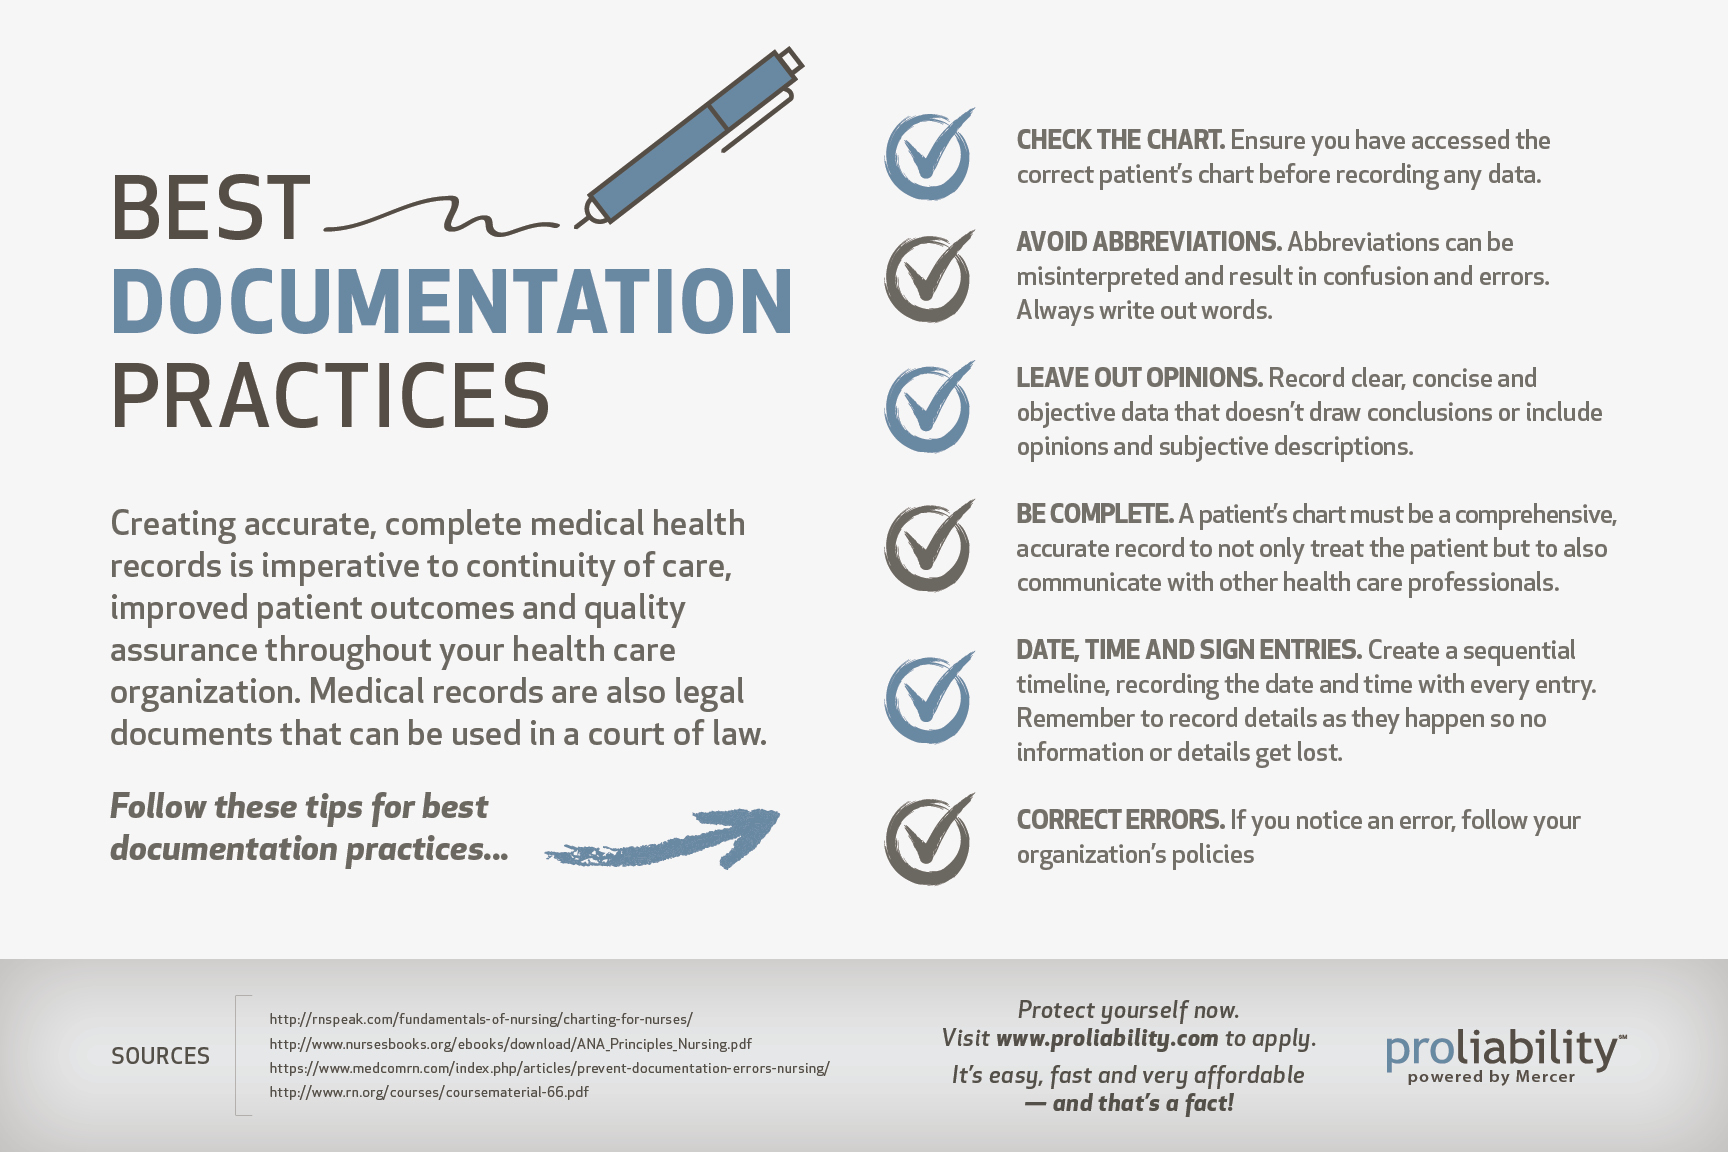 Documentation Best Practices Infographic